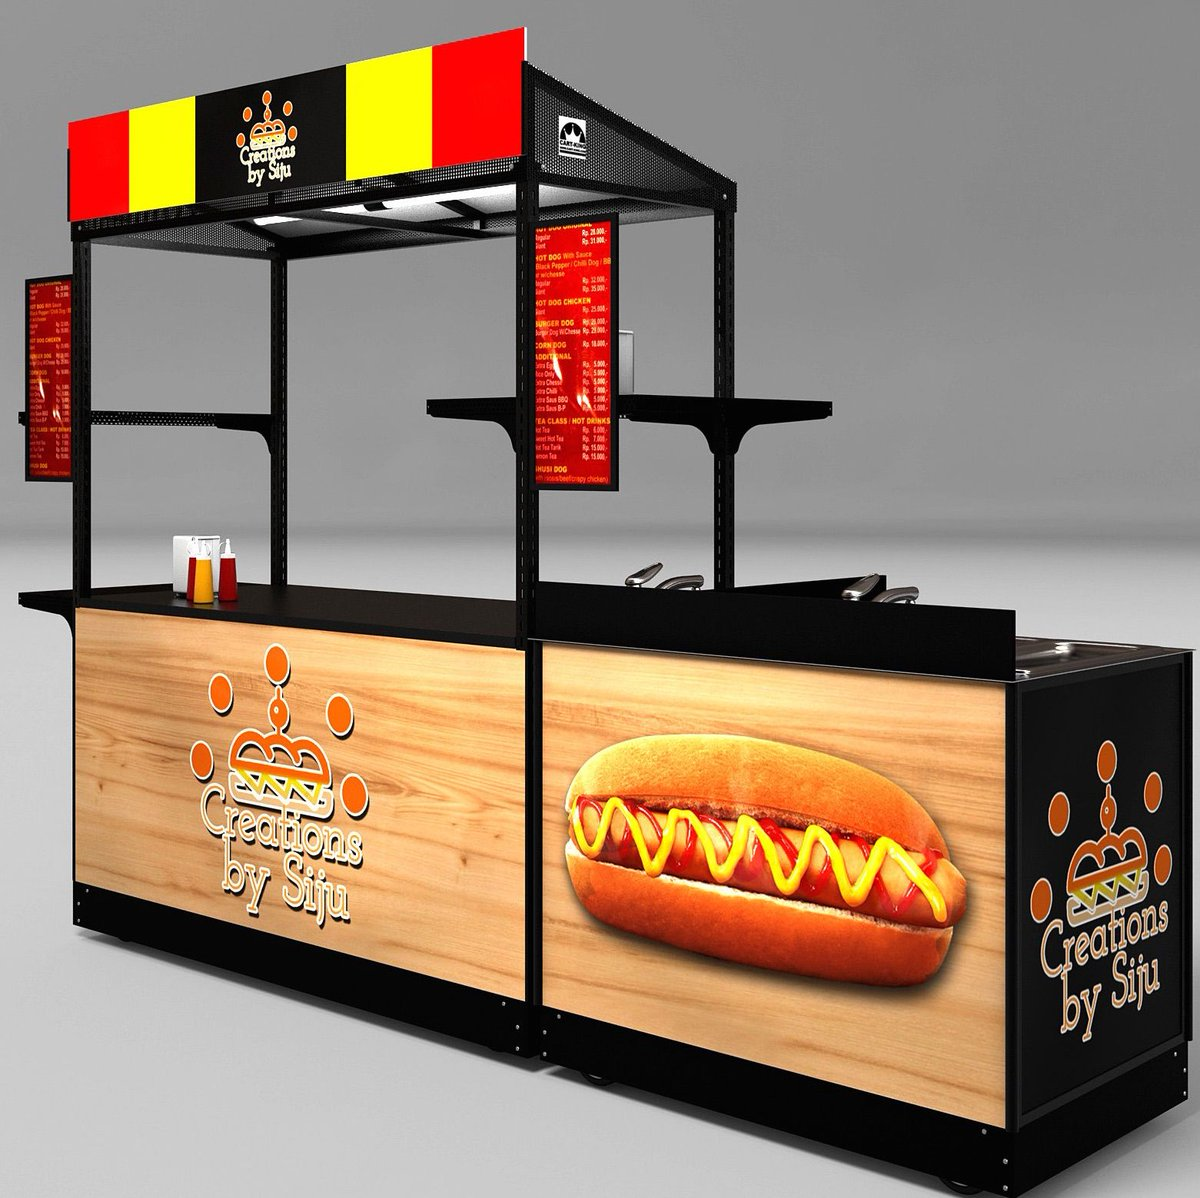 Imagine a Suya and Smoothie stand! just like this. where hygiene and Uniqueness are maintained.  focused on just Suya and Smoothie.  Funke Akindele | state House | Tobi | Paystack <br>http://pic.twitter.com/G3z6fJr4nG